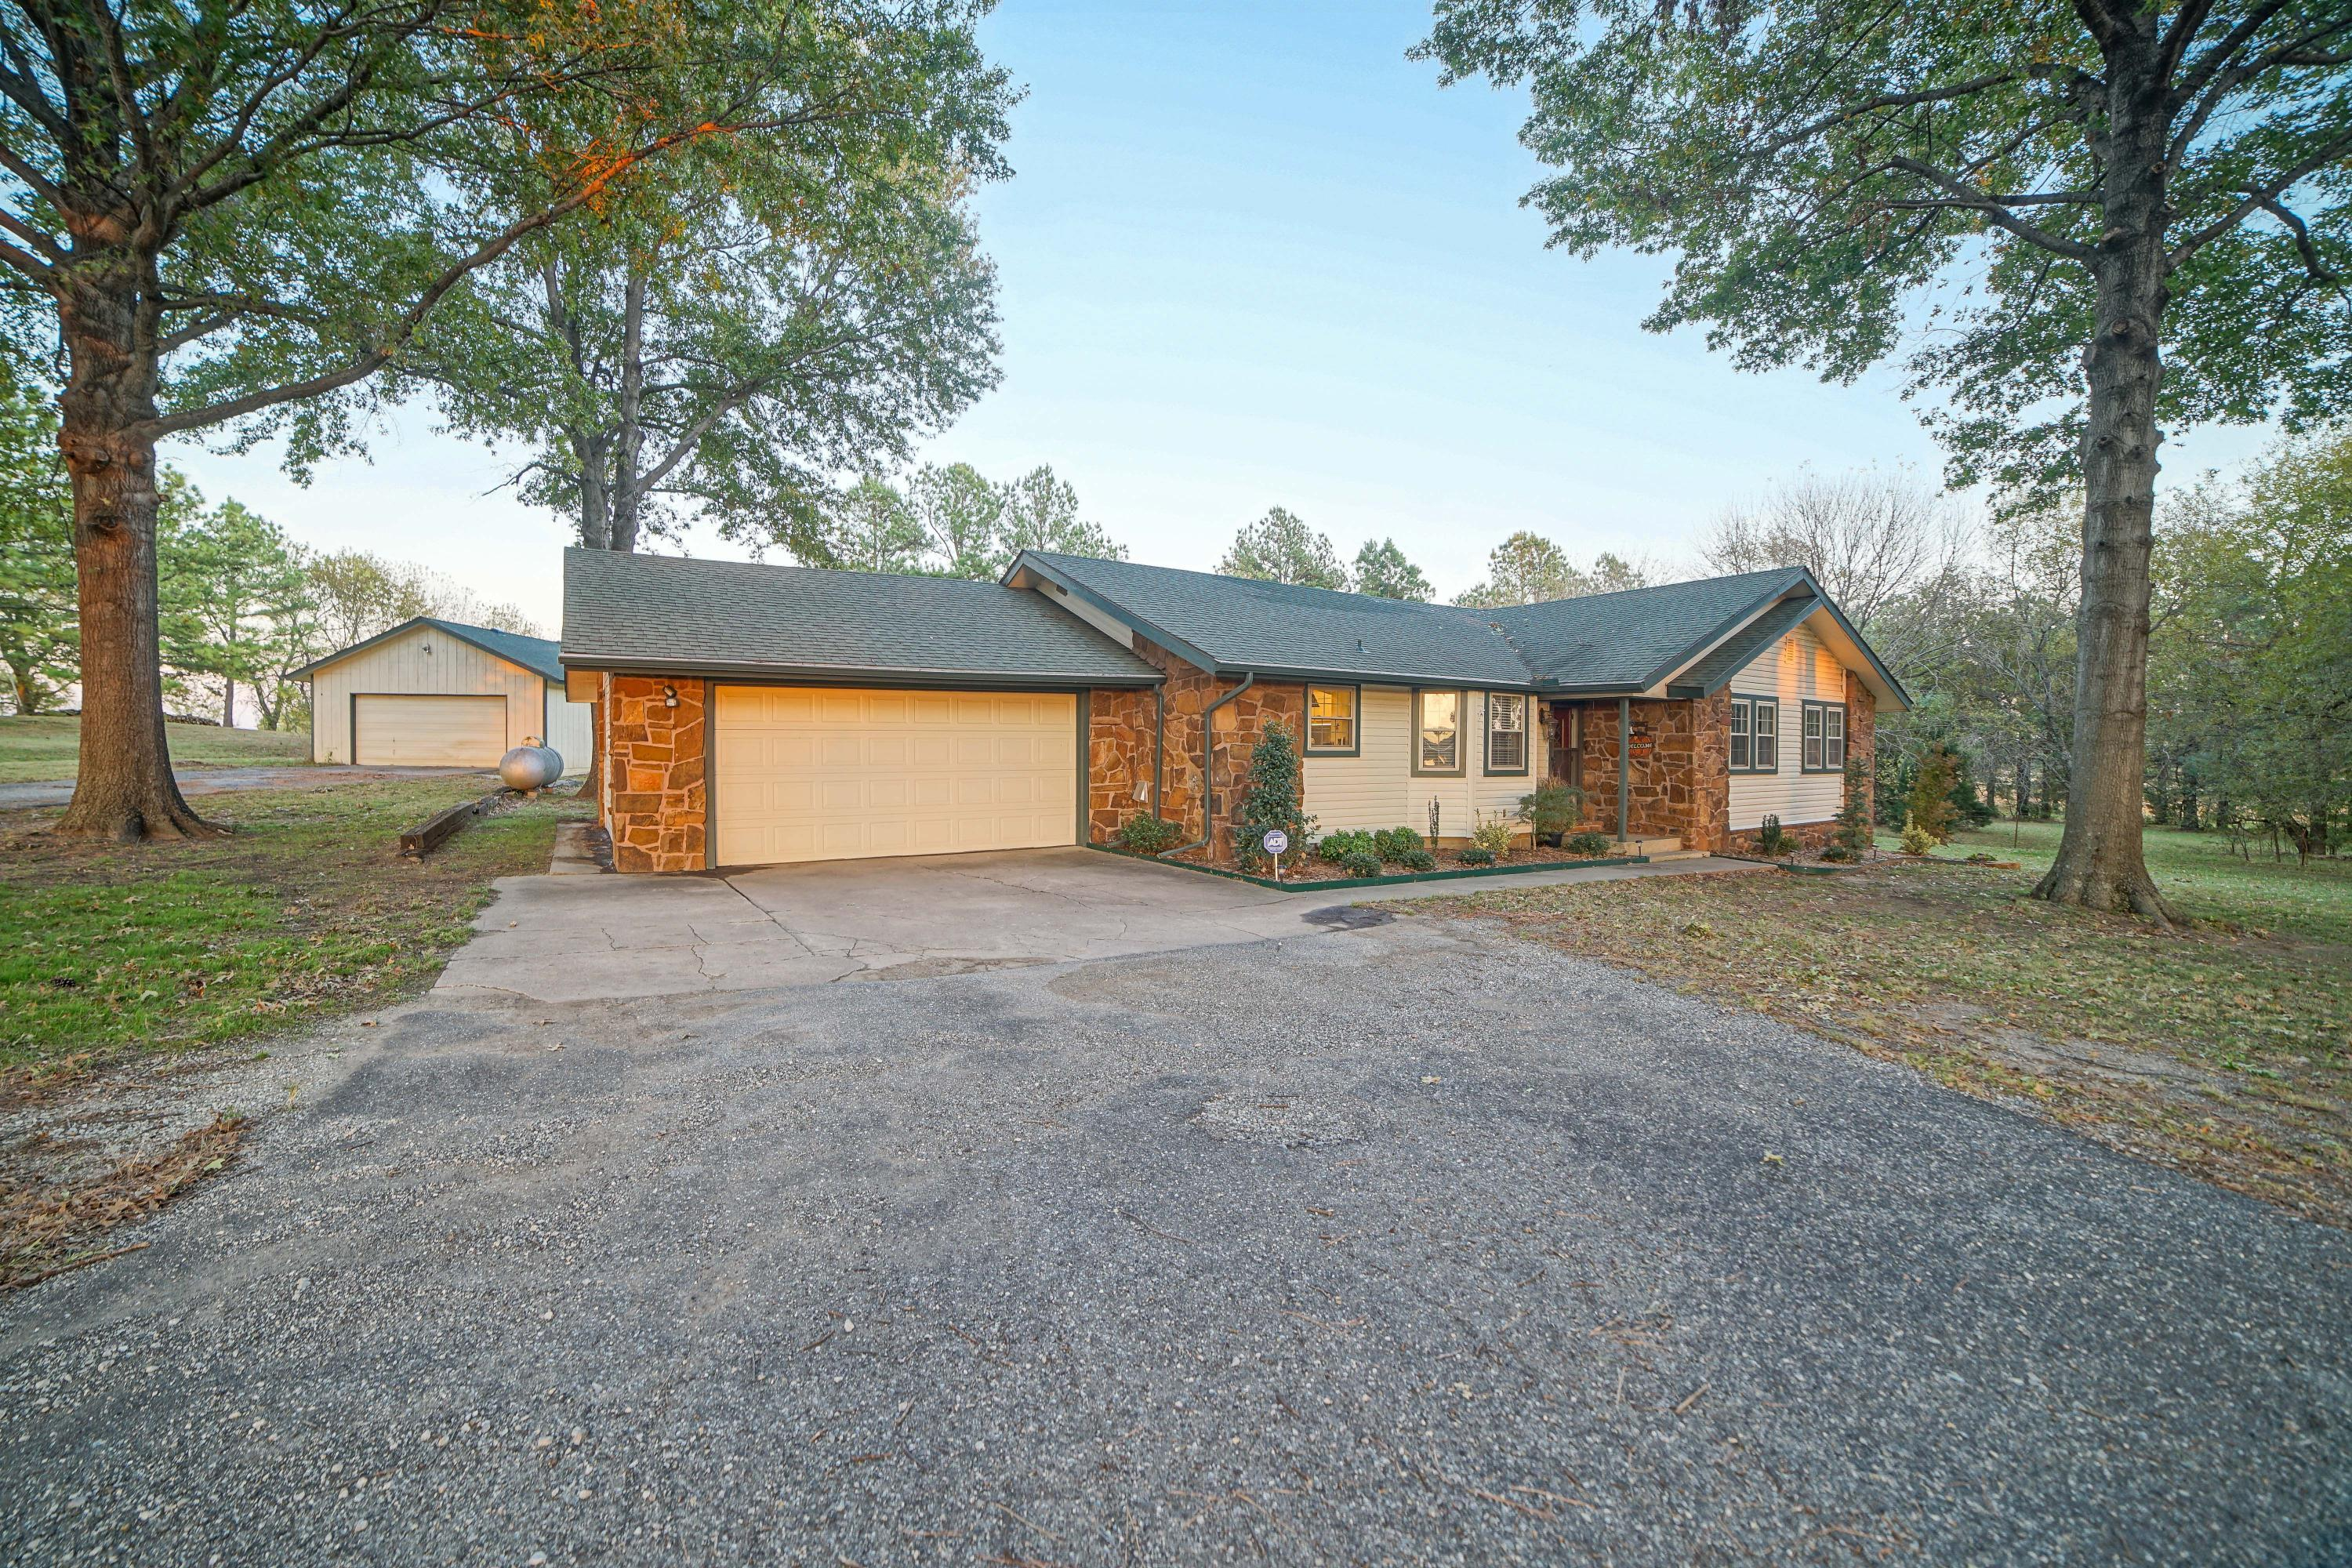 Off Market | 26328 S 4420 Road Vinita, OK 74301 0